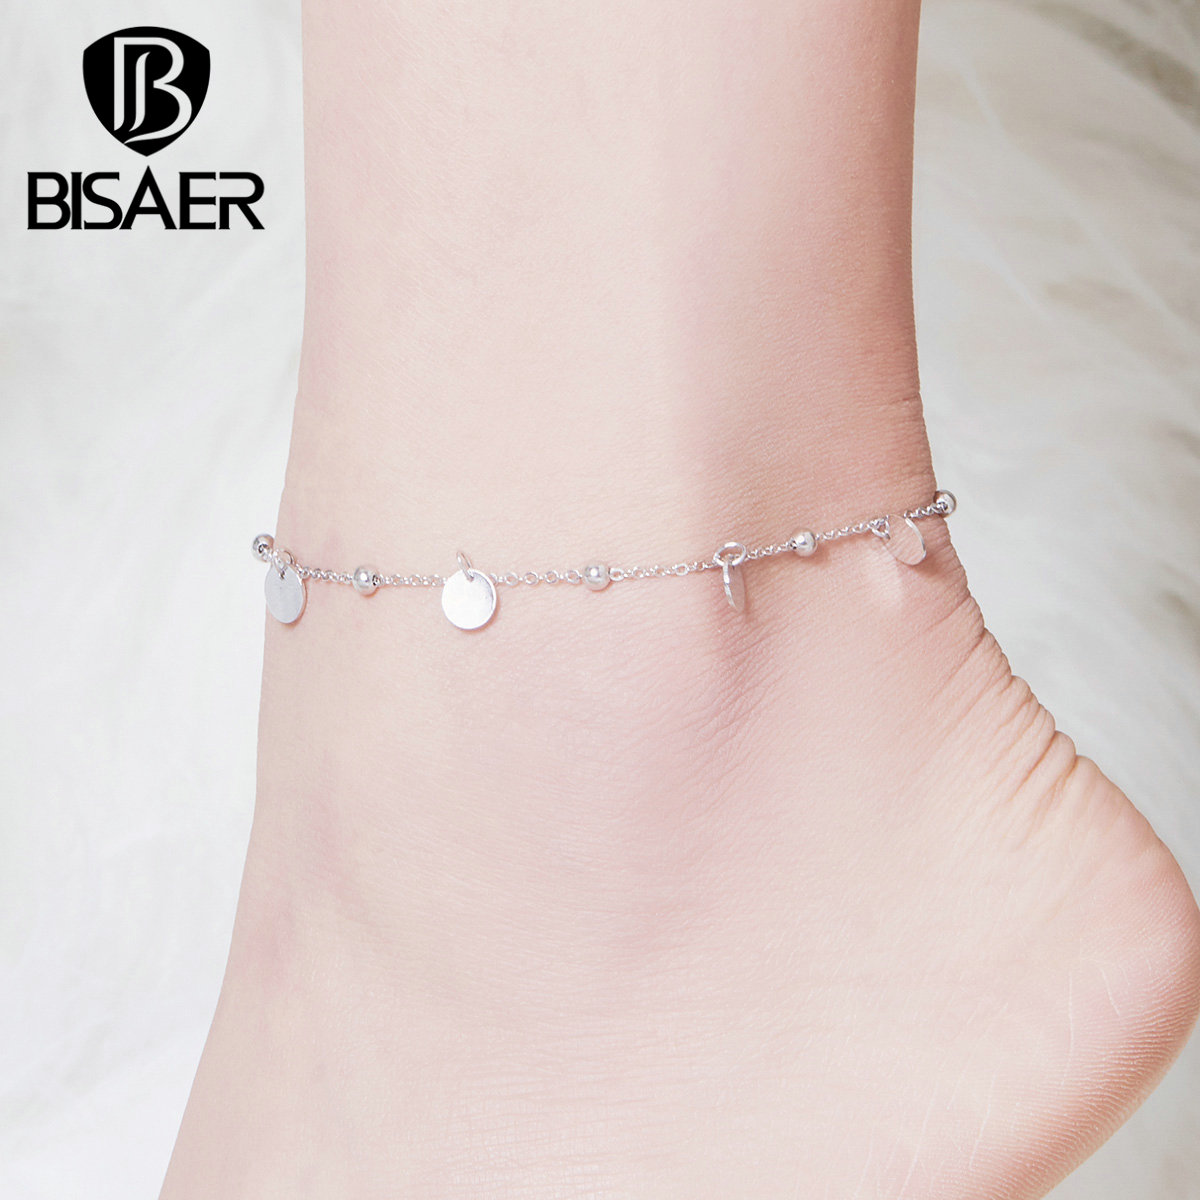 Anklets BISAER 925 Sterling Silver Round Coin Chain Women Anklets for Women Lobster Clasp Sterling Silver Jewelry ECT011